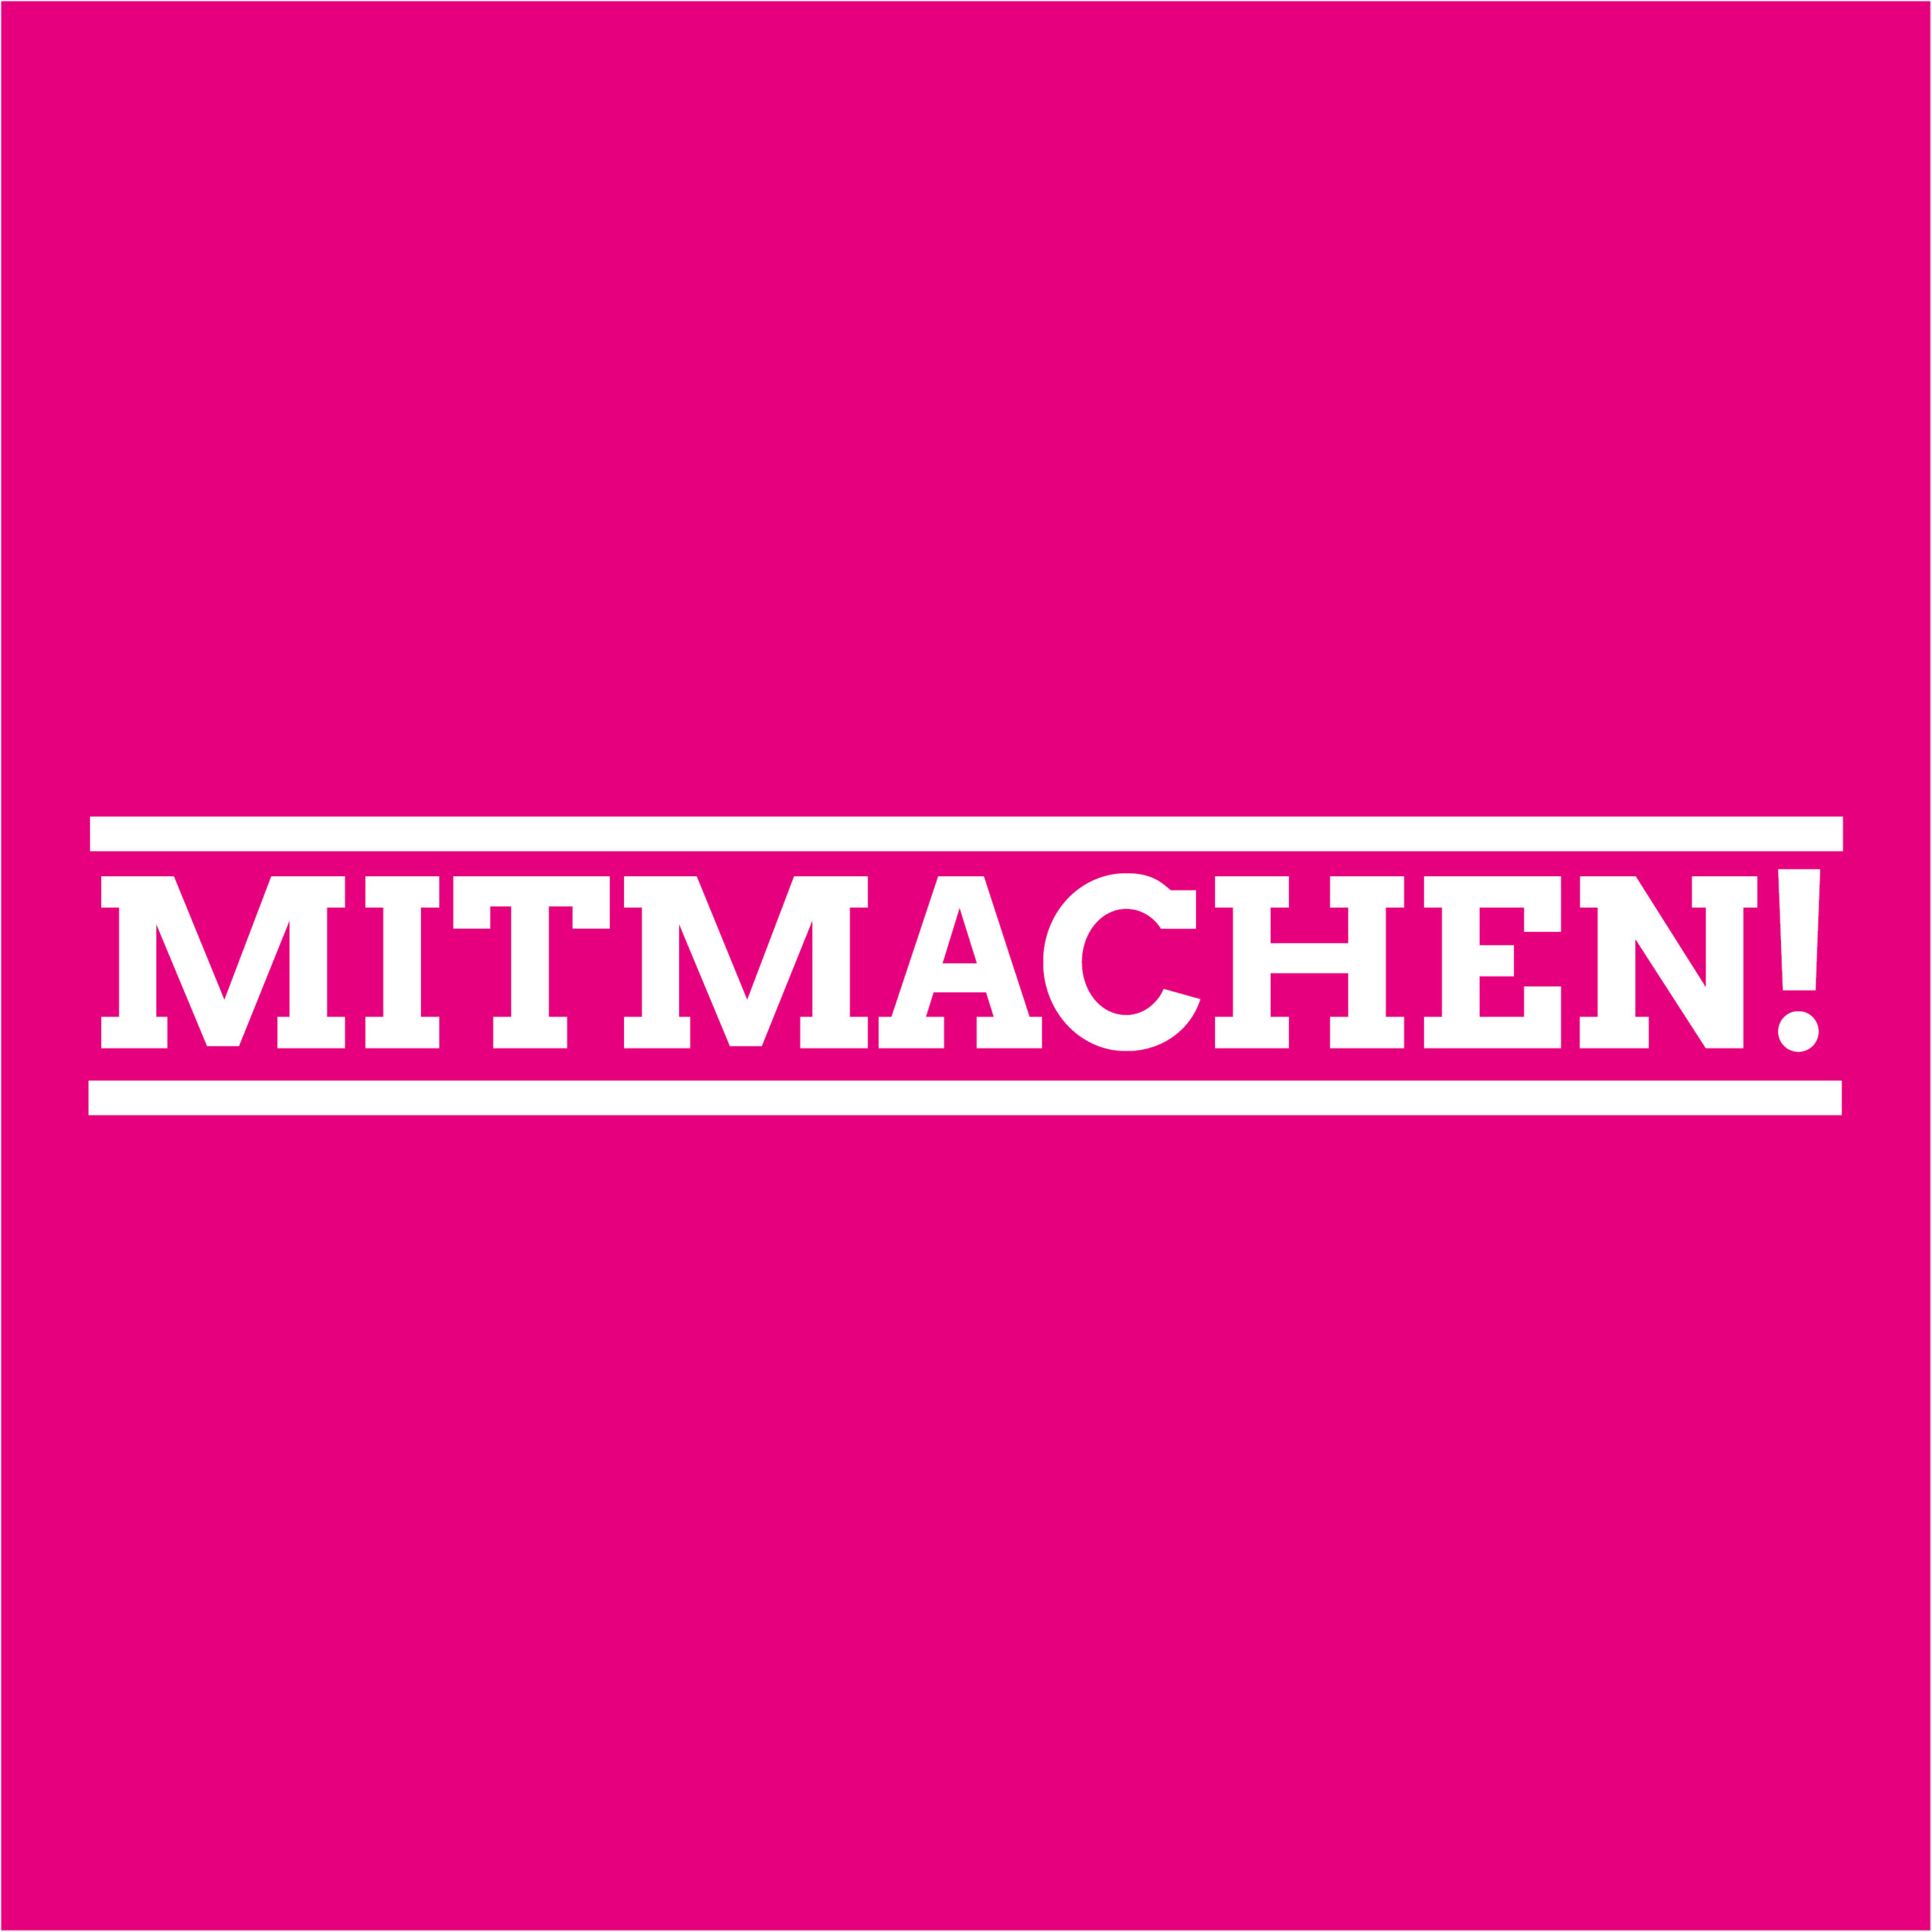 Mitmachen